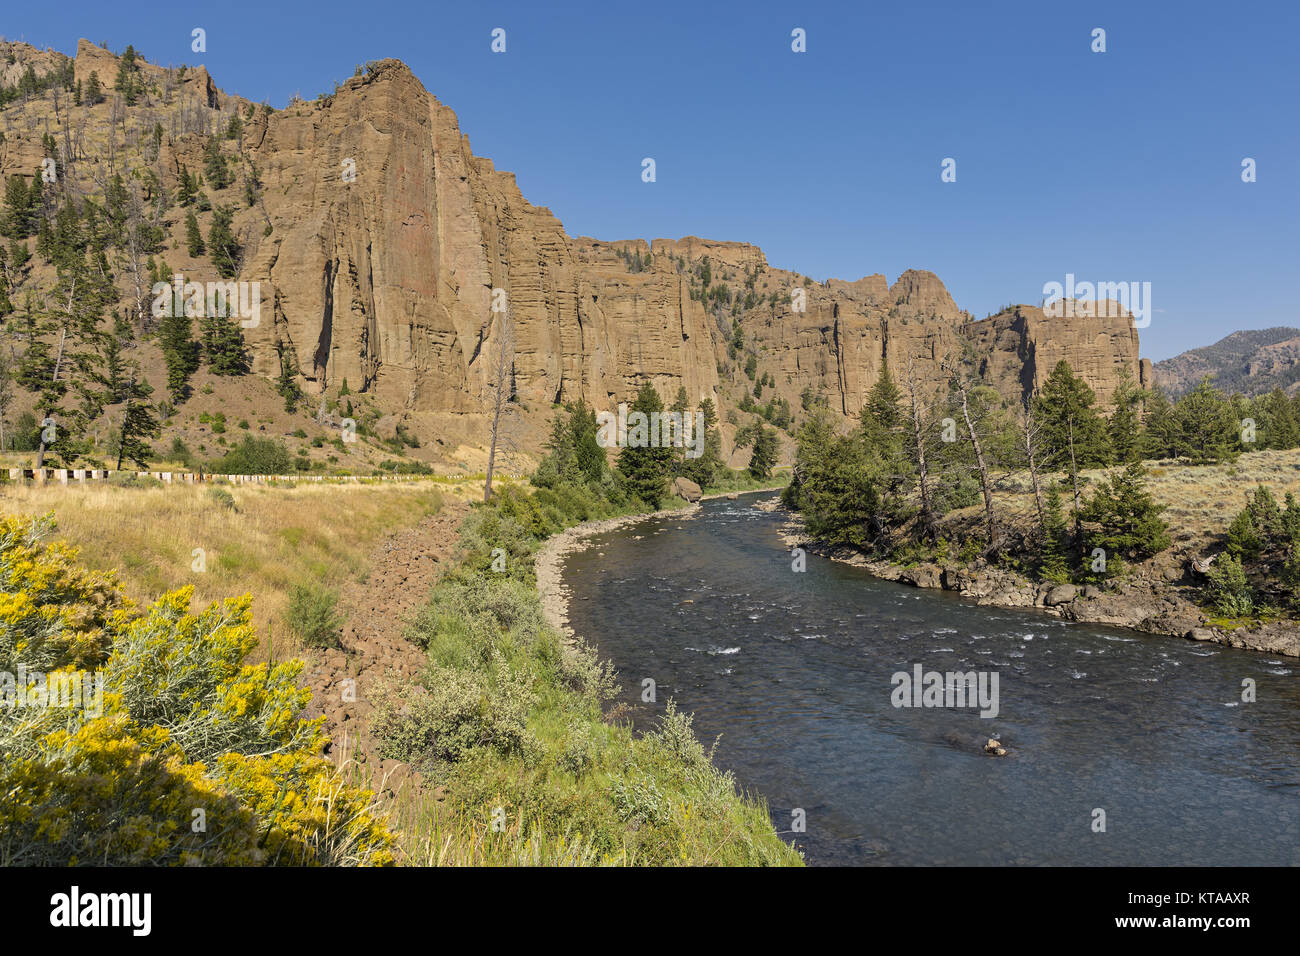 Red rock cliffs over the North Fork Shoshone River East of Yellowstone National Park Near Cody Wyoming - Stock Image